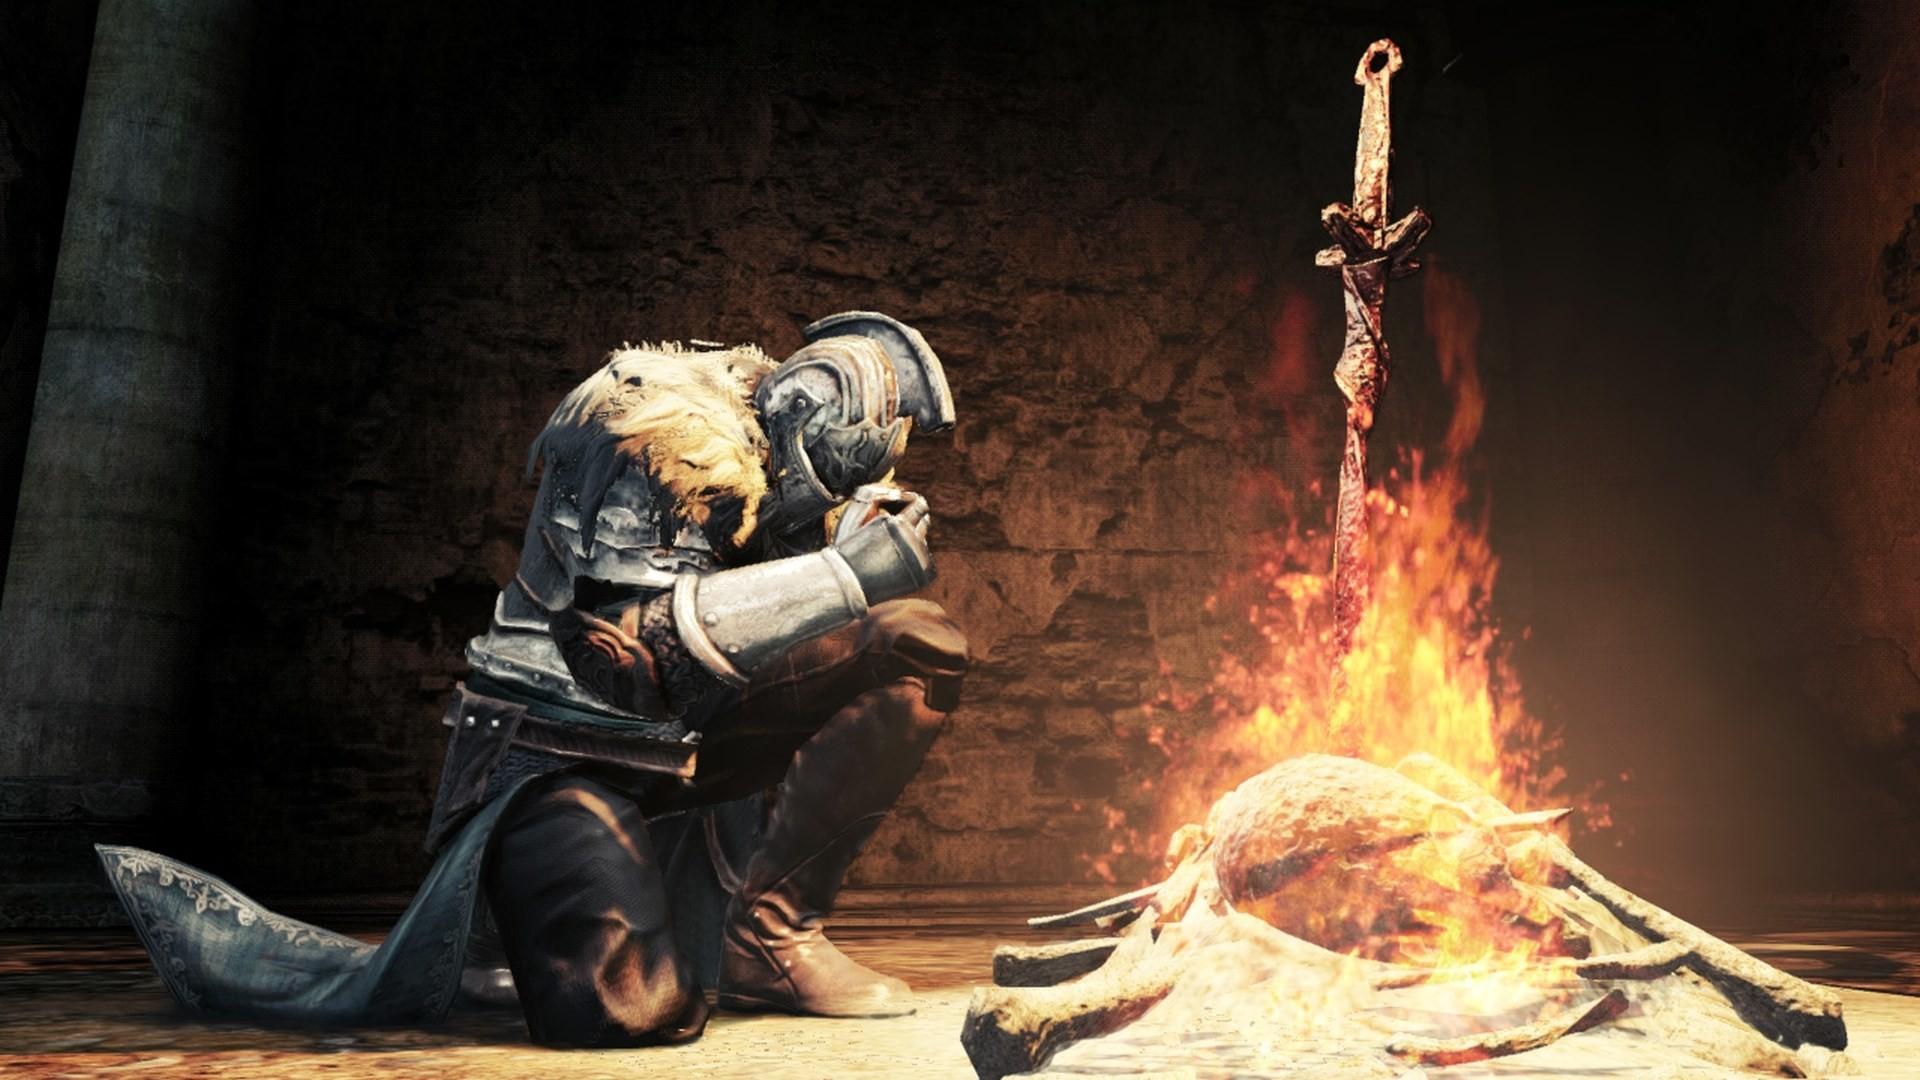 dark souls 2 bonfire wallpaper hd